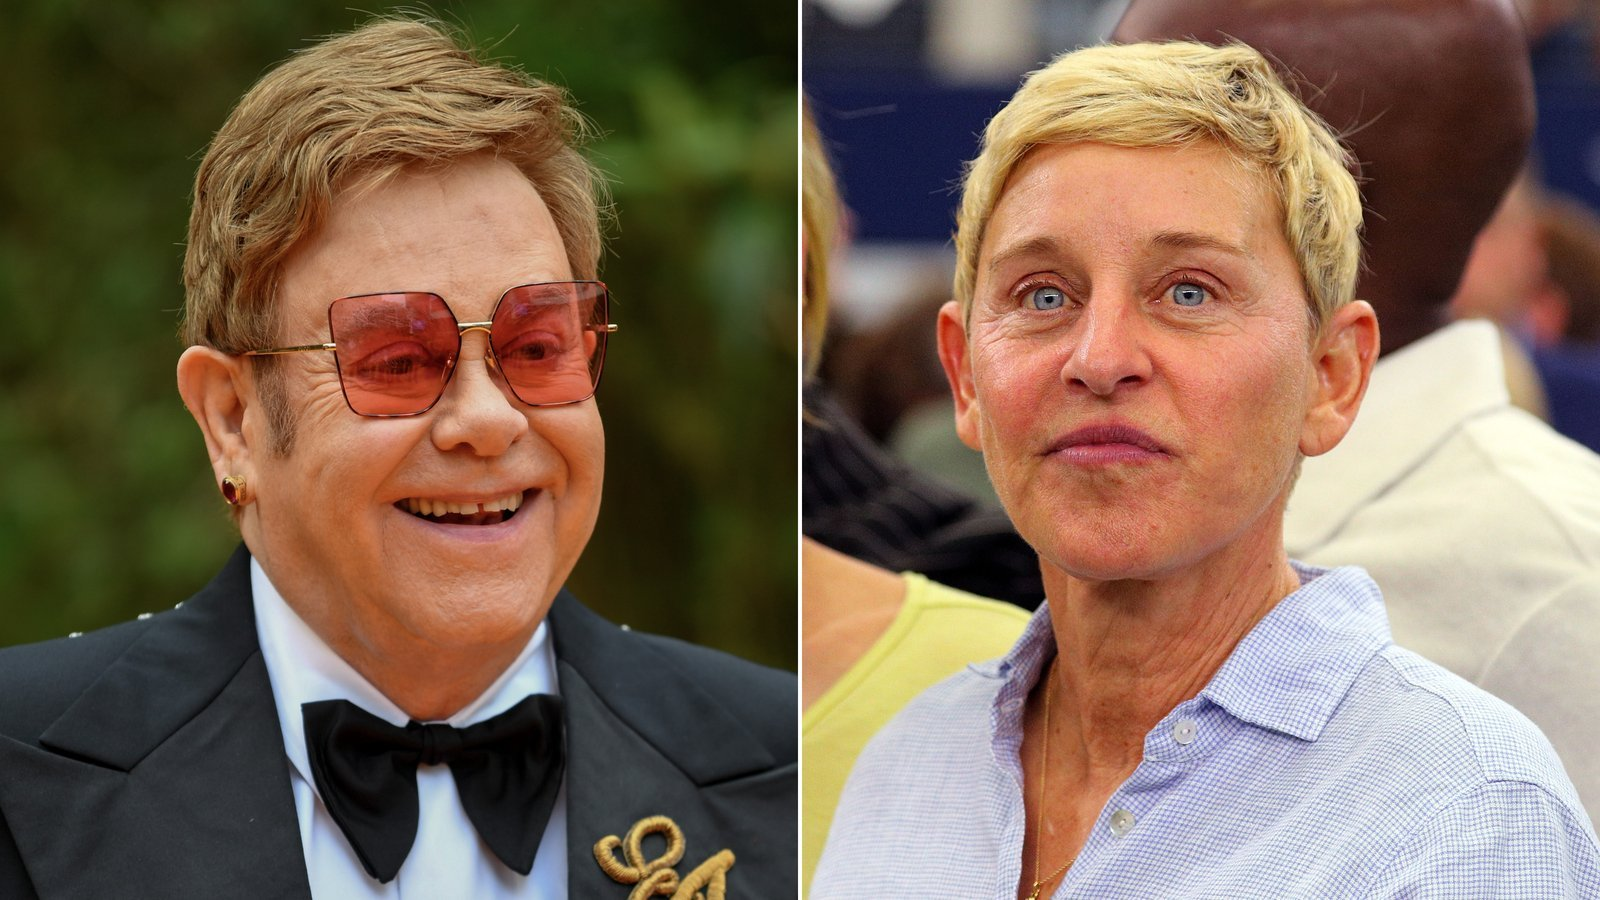 Elton John defends Ellen DeGeneres' friendship with George W. Bush